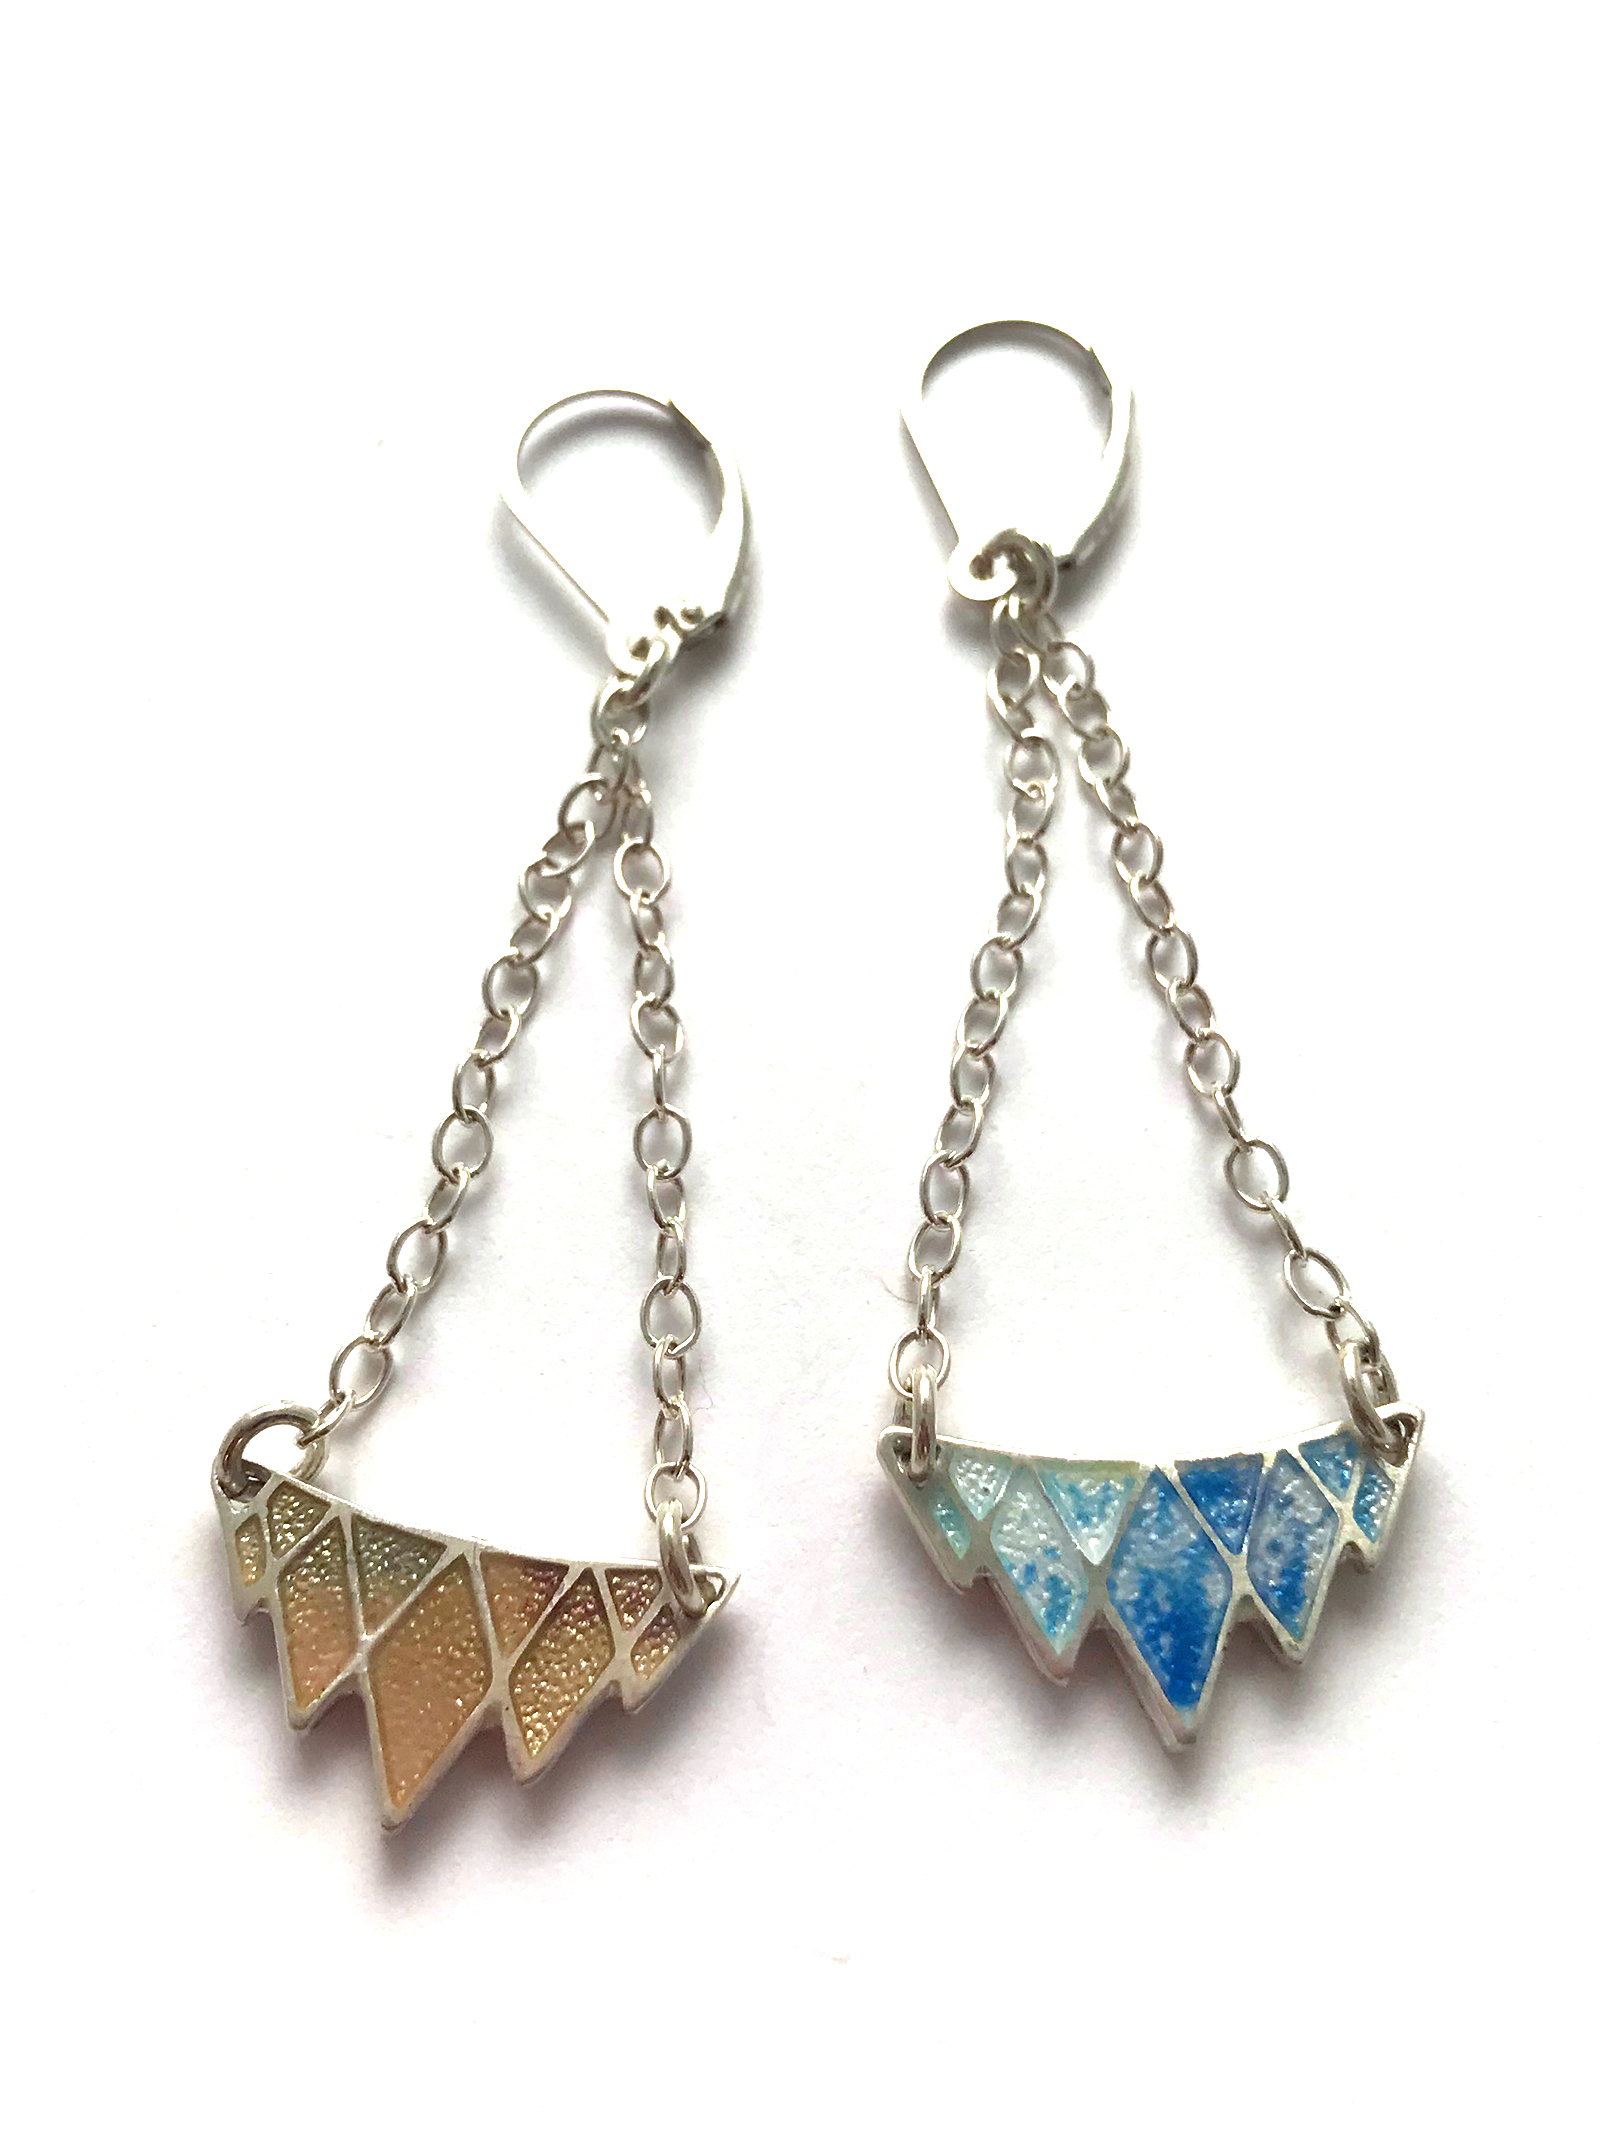 Reversible Earrings - Champlevé Enamel Shown here in Rose Gold and Shibori Blue